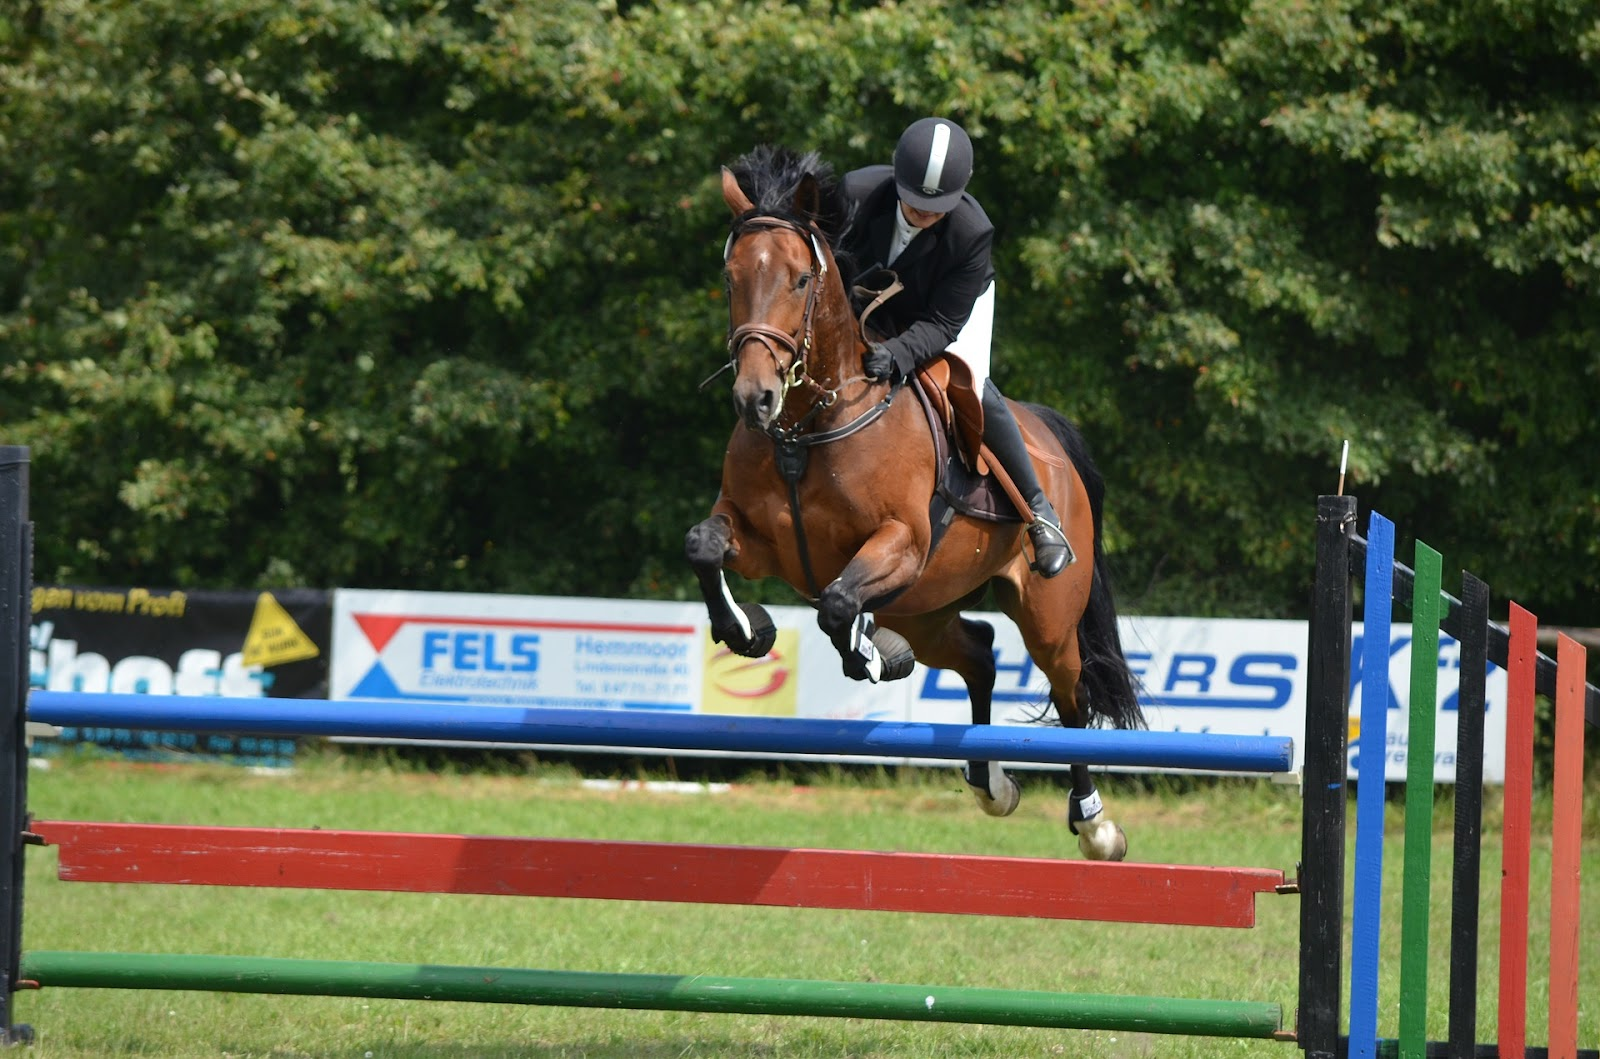 Bay horse jumps colourful jump as rider looks down